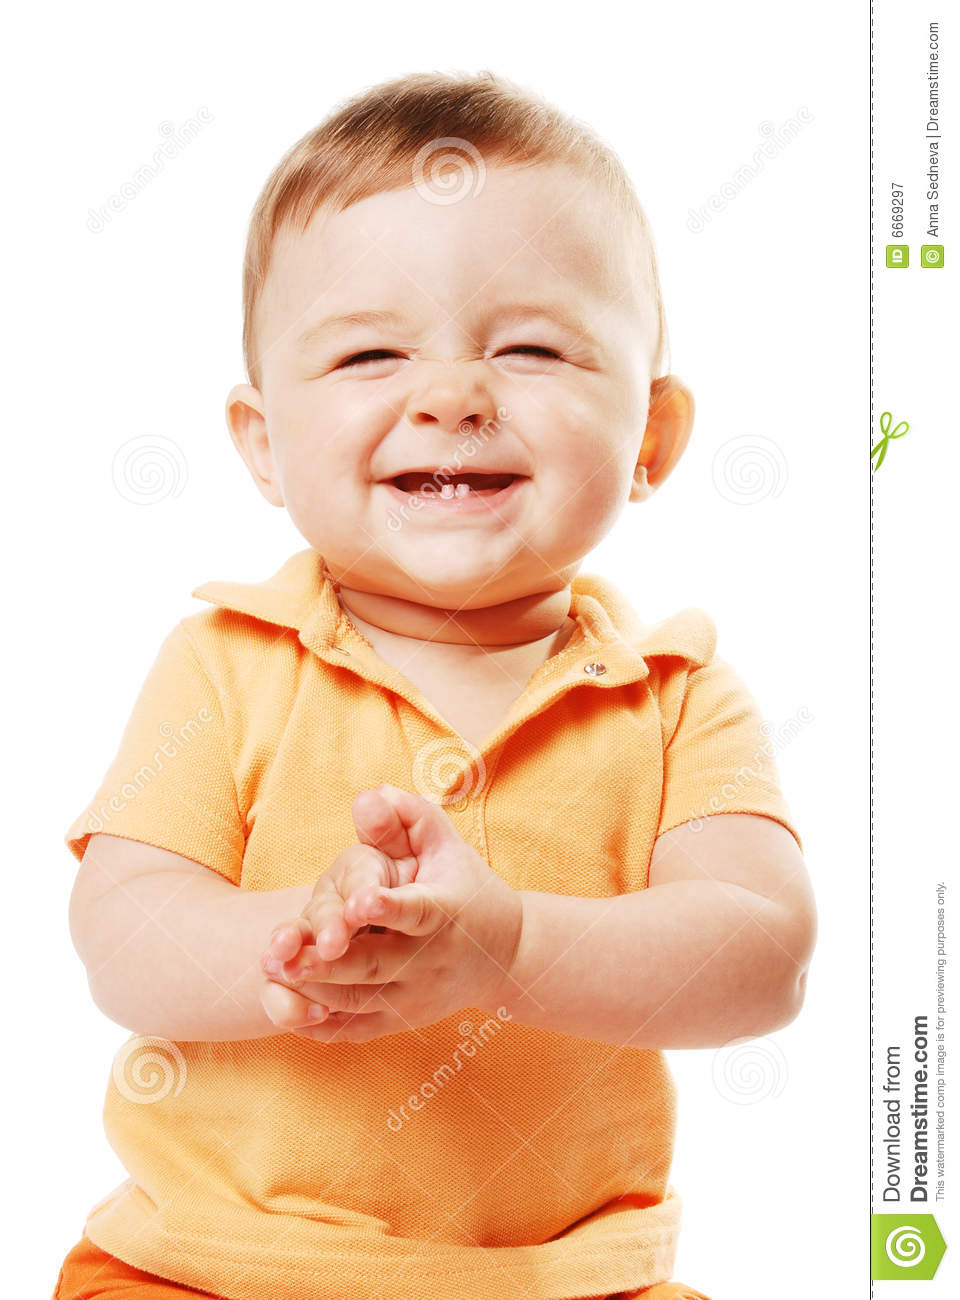 The Laughing Baby Stock Image Image Of Funny Hand Portrait 6669297